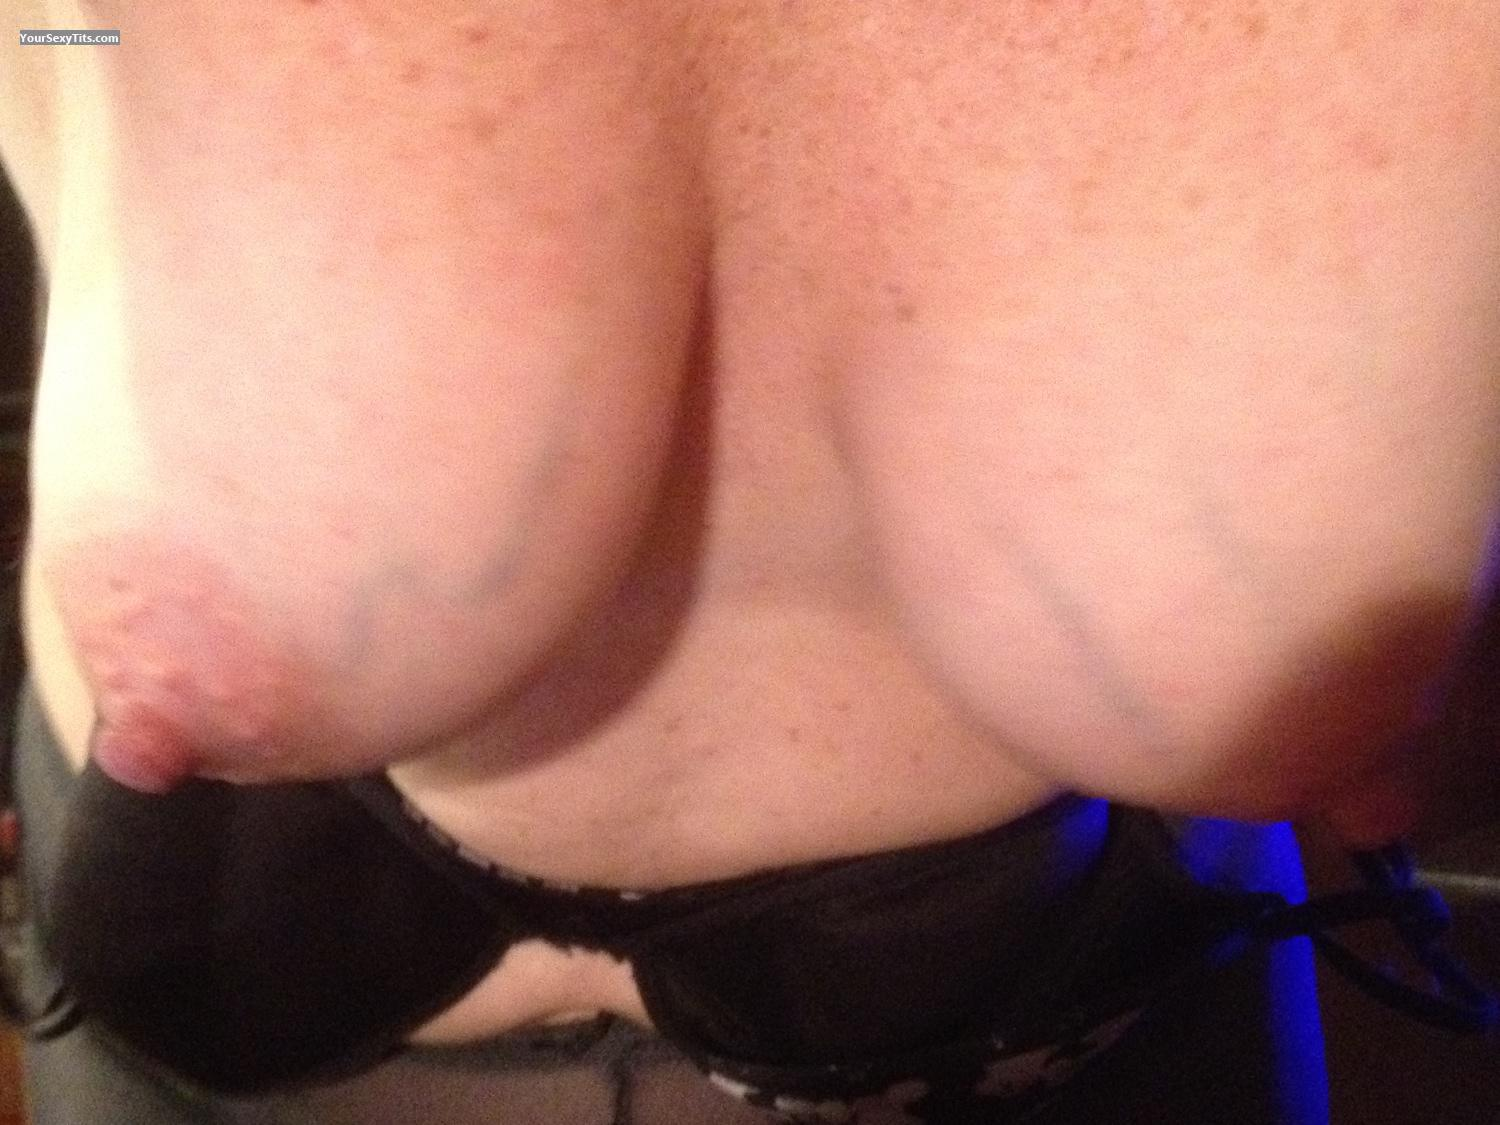 Tit Flash: Medium Tits By IPhone - Jo from United States